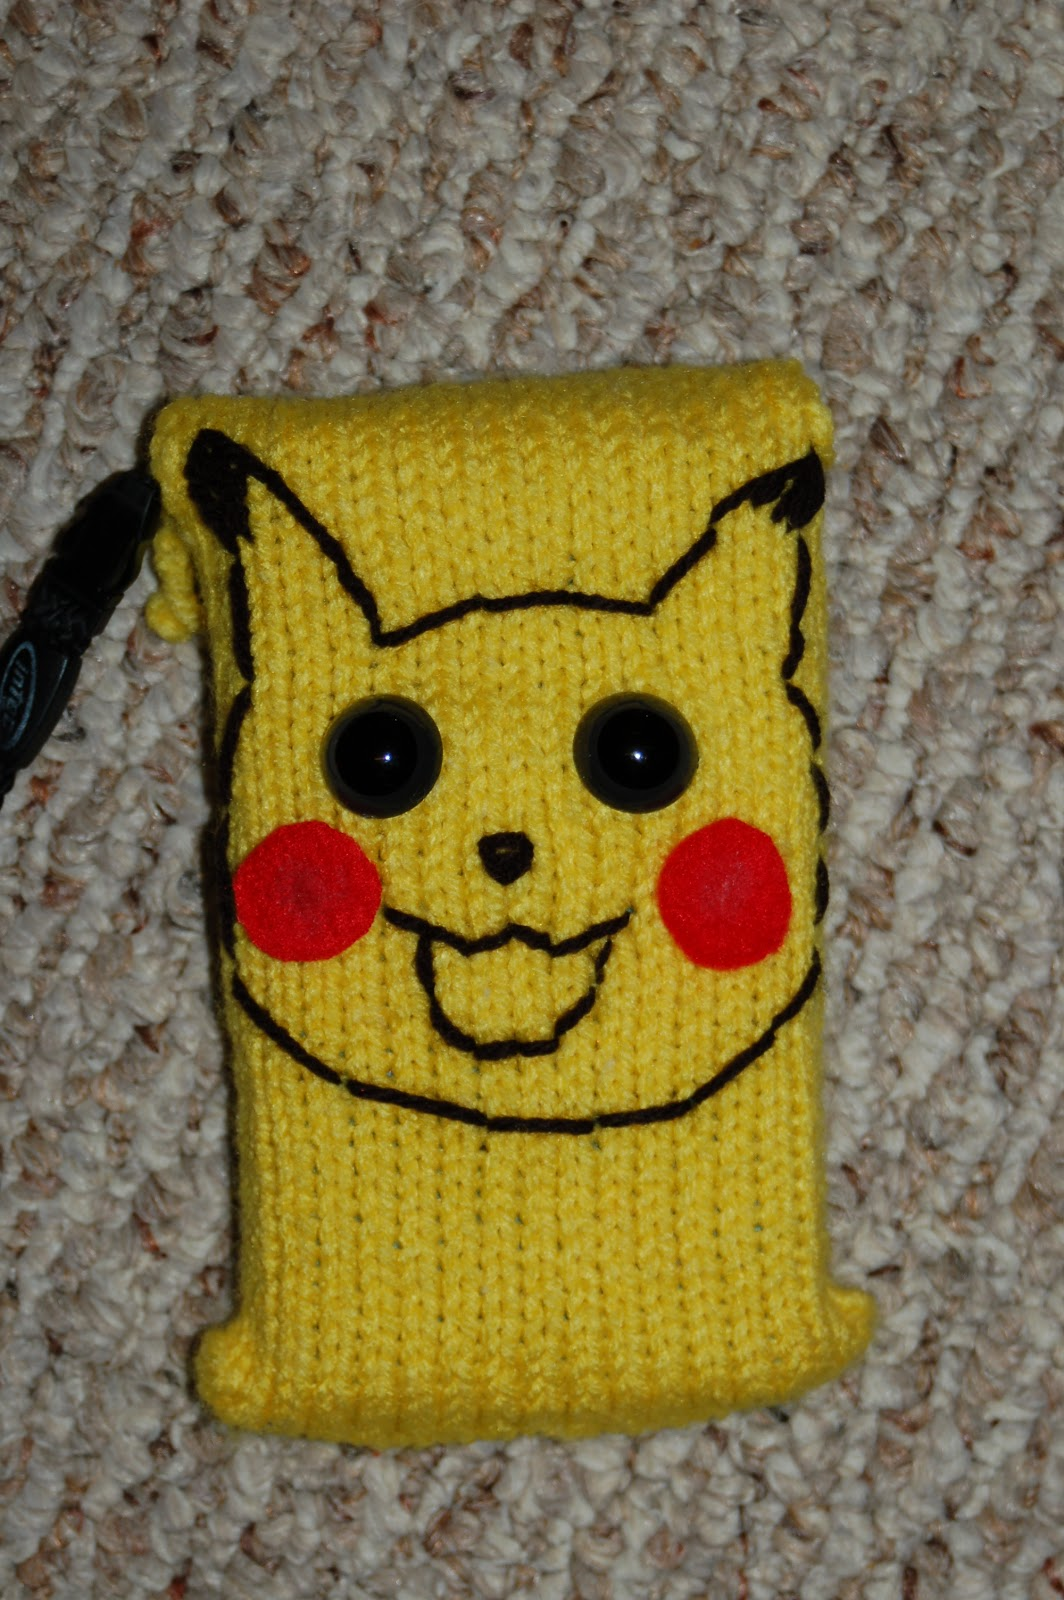 amiable knitting: Pikachu DS Cozy